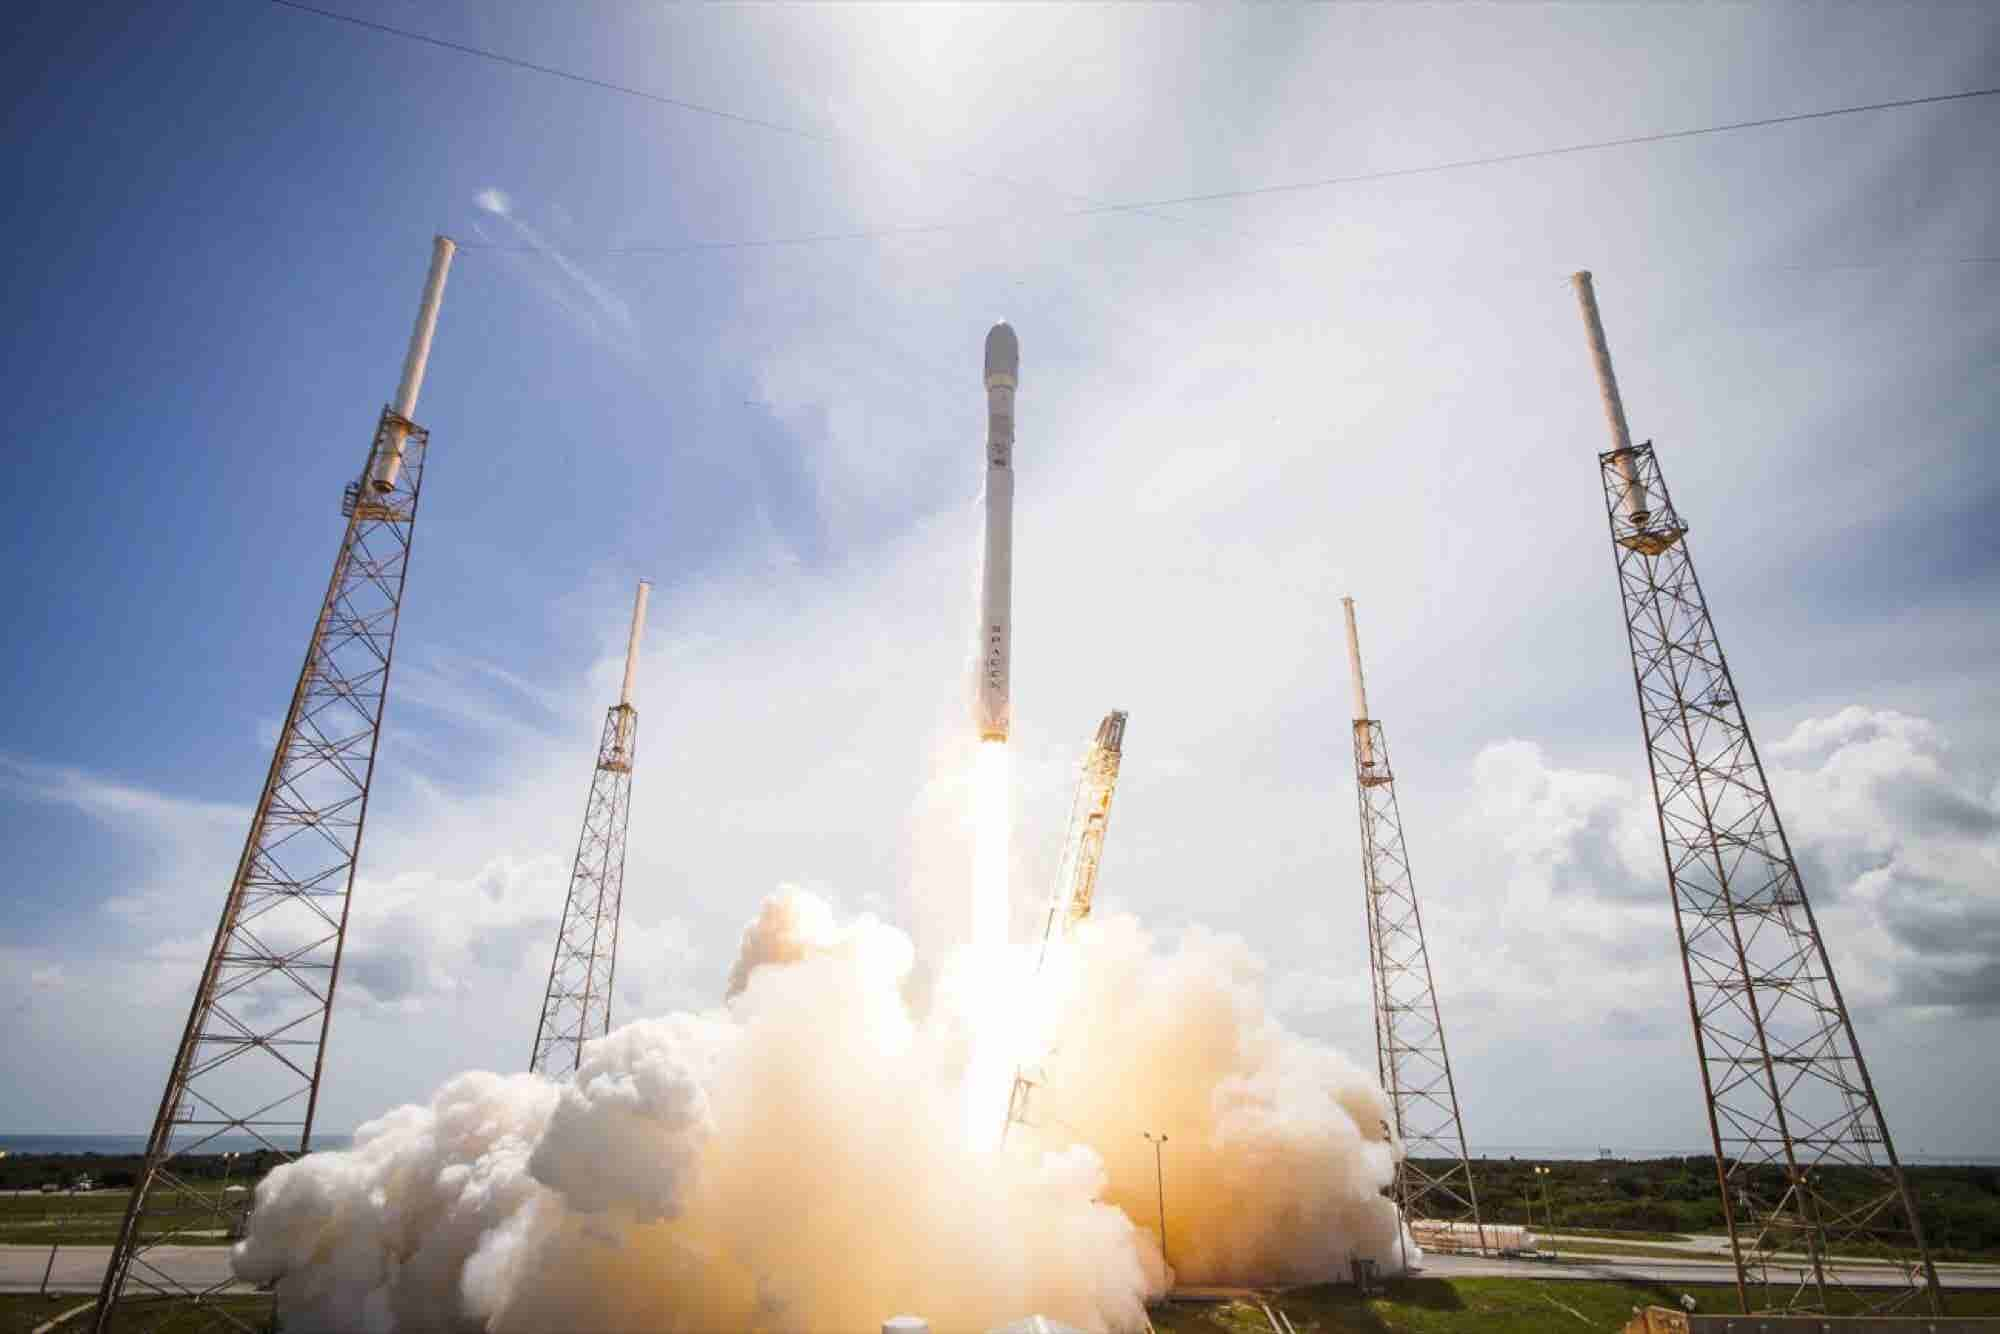 Elon Musk Says Falcon 9 Second Stage Recovery Requires 'Giant Party Balloon'